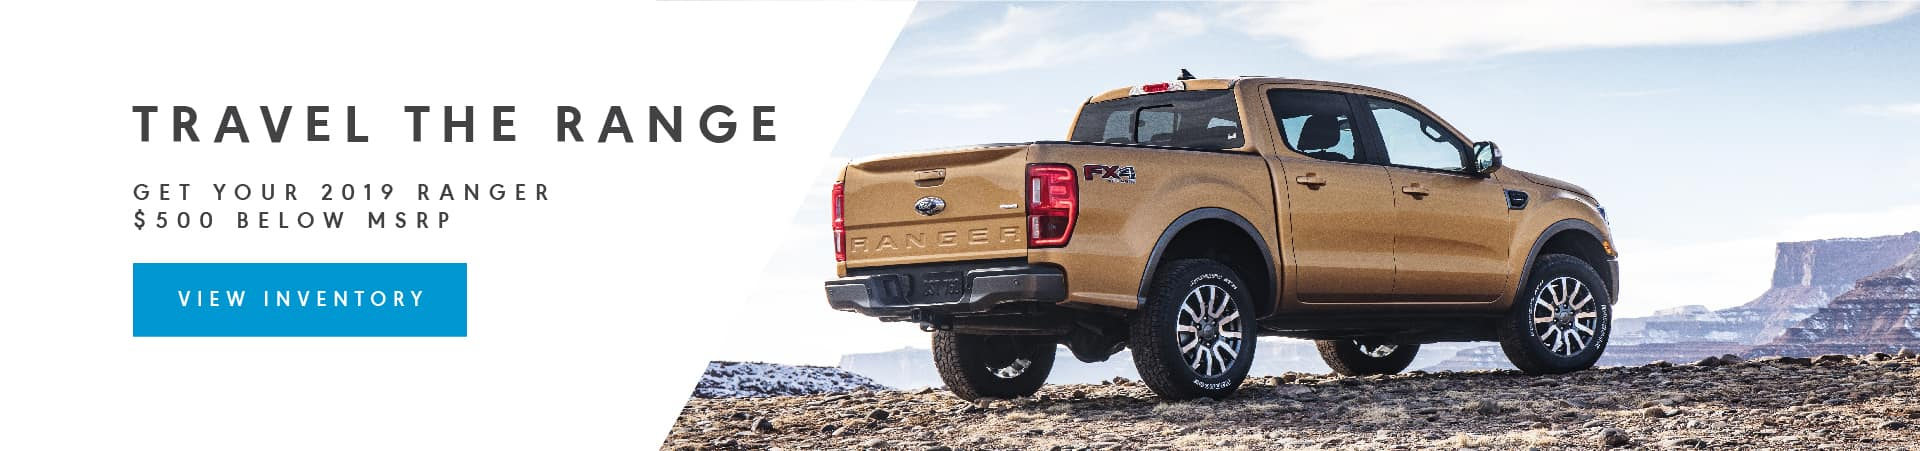 Order your Ranger today, $500 Off MSRP